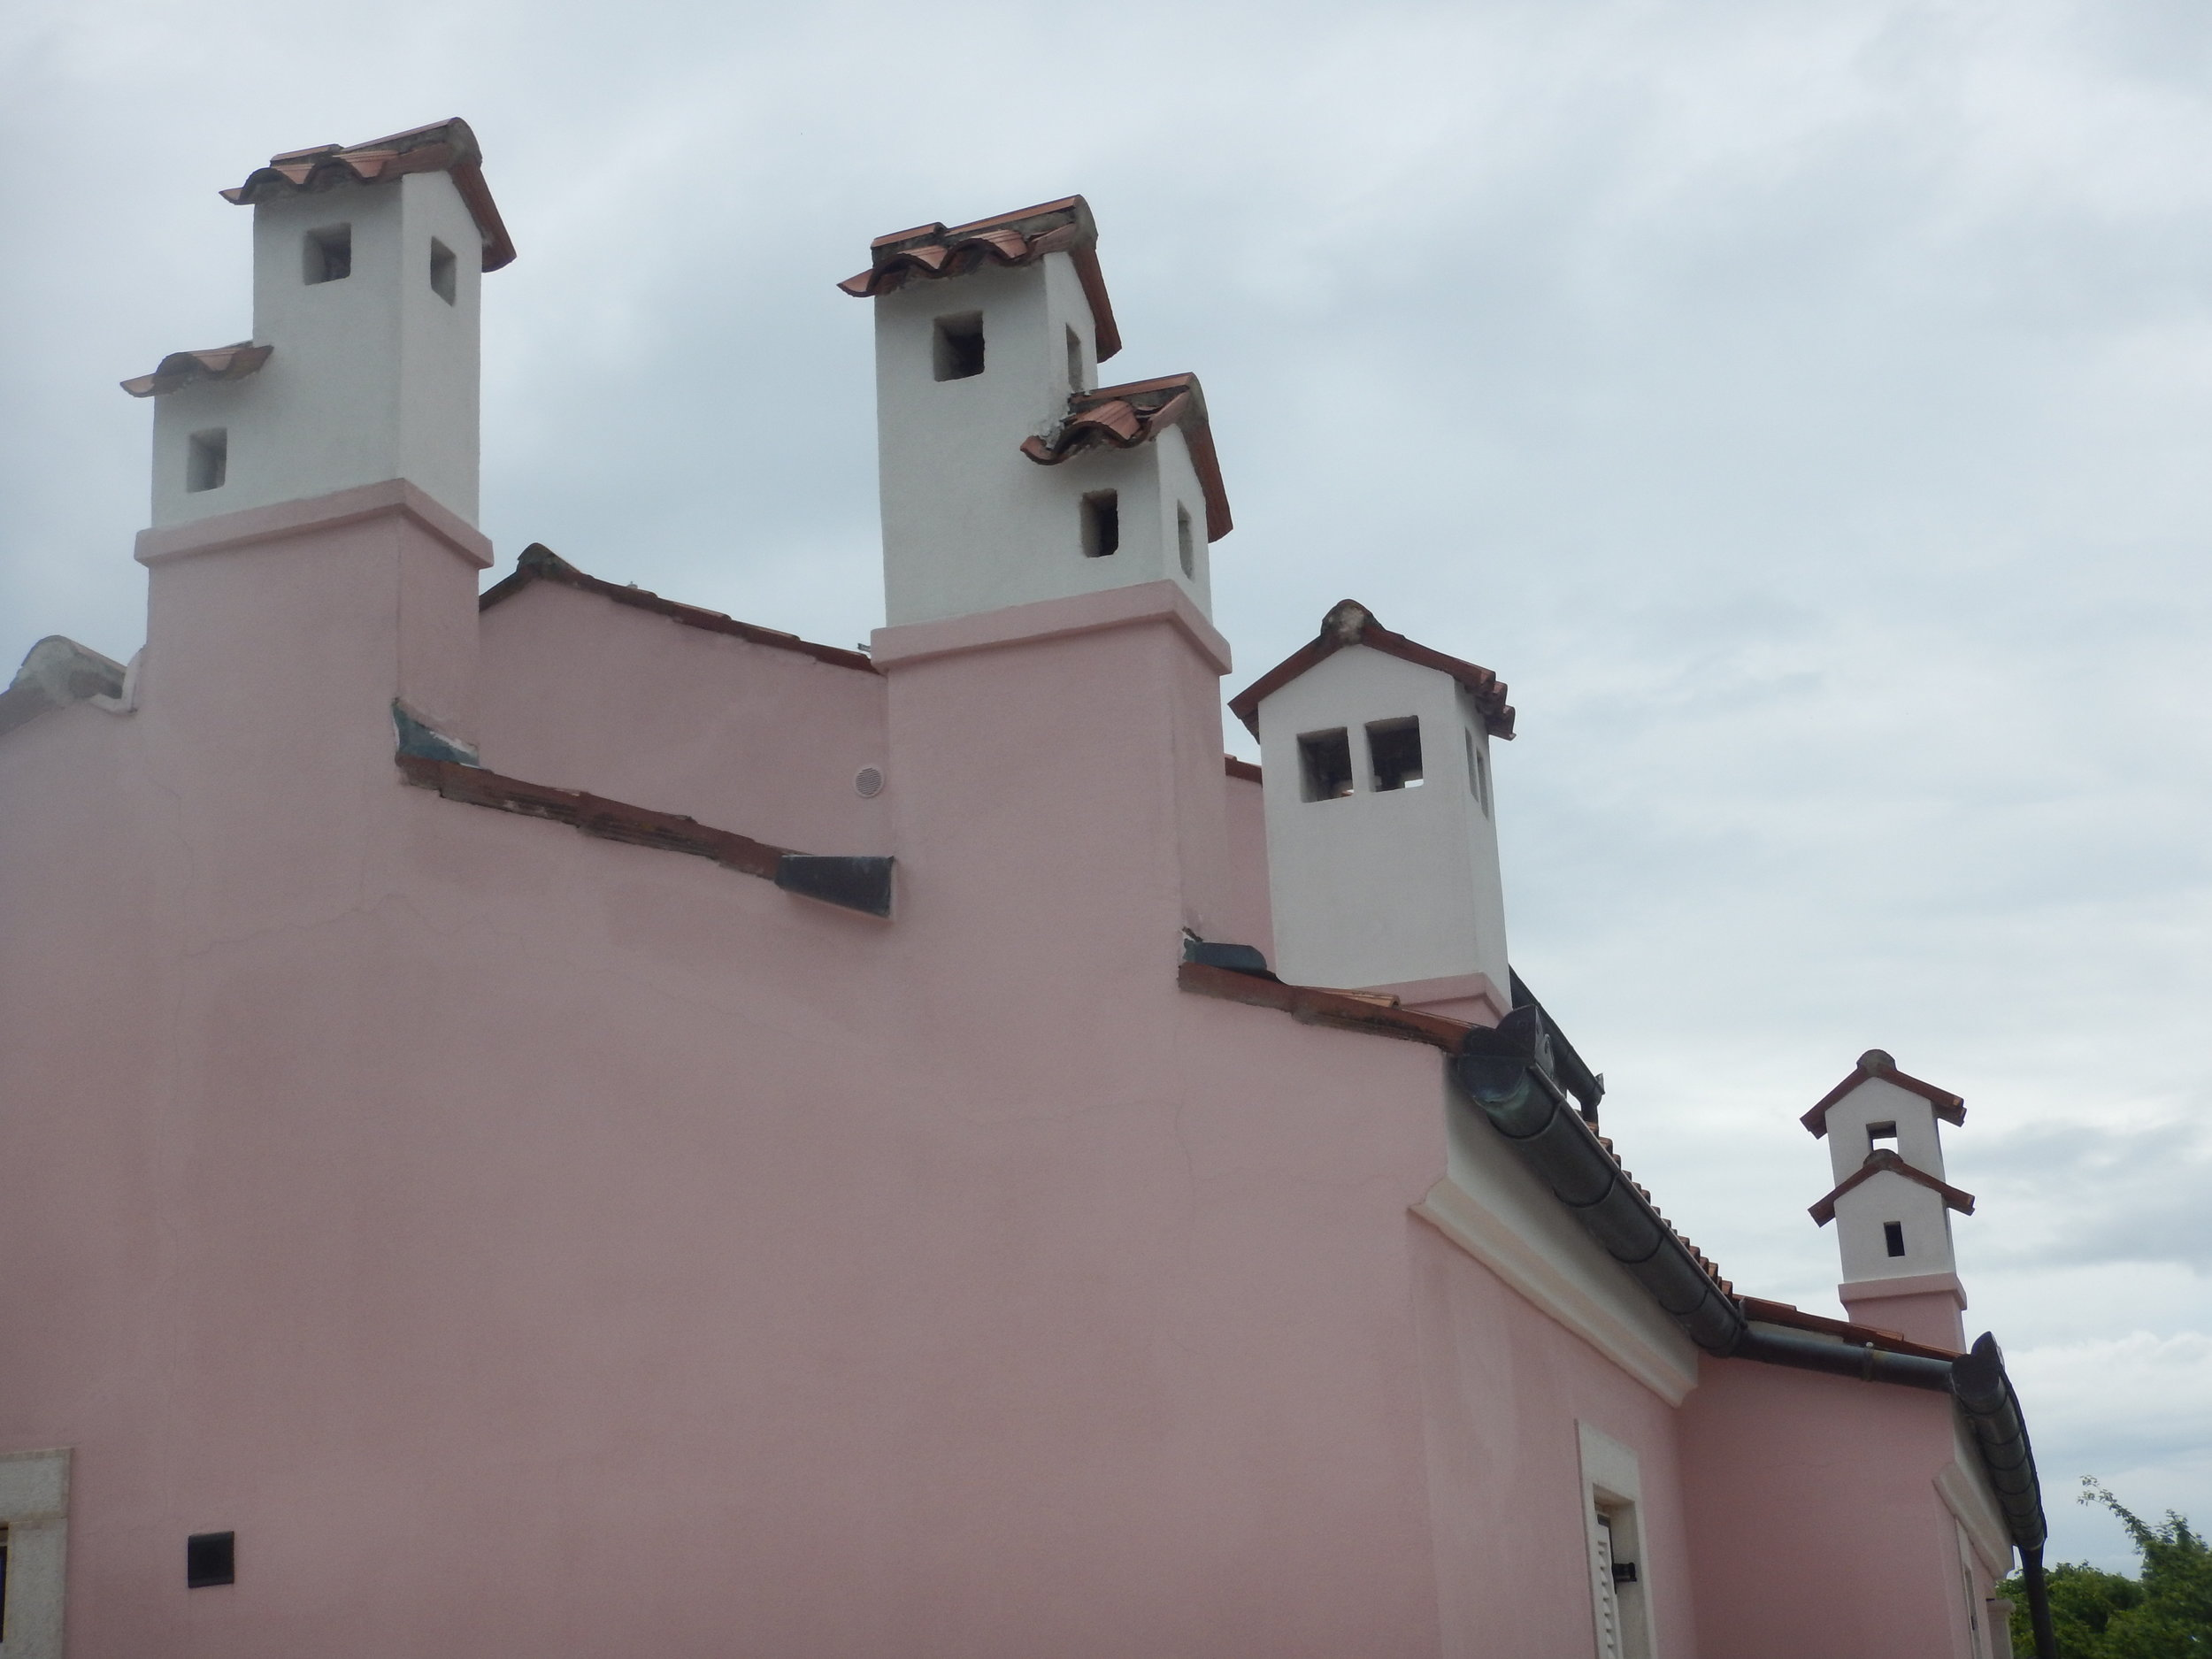 These chimneys look like little houses on top of big houses. Beli Beach House, Cres Island.